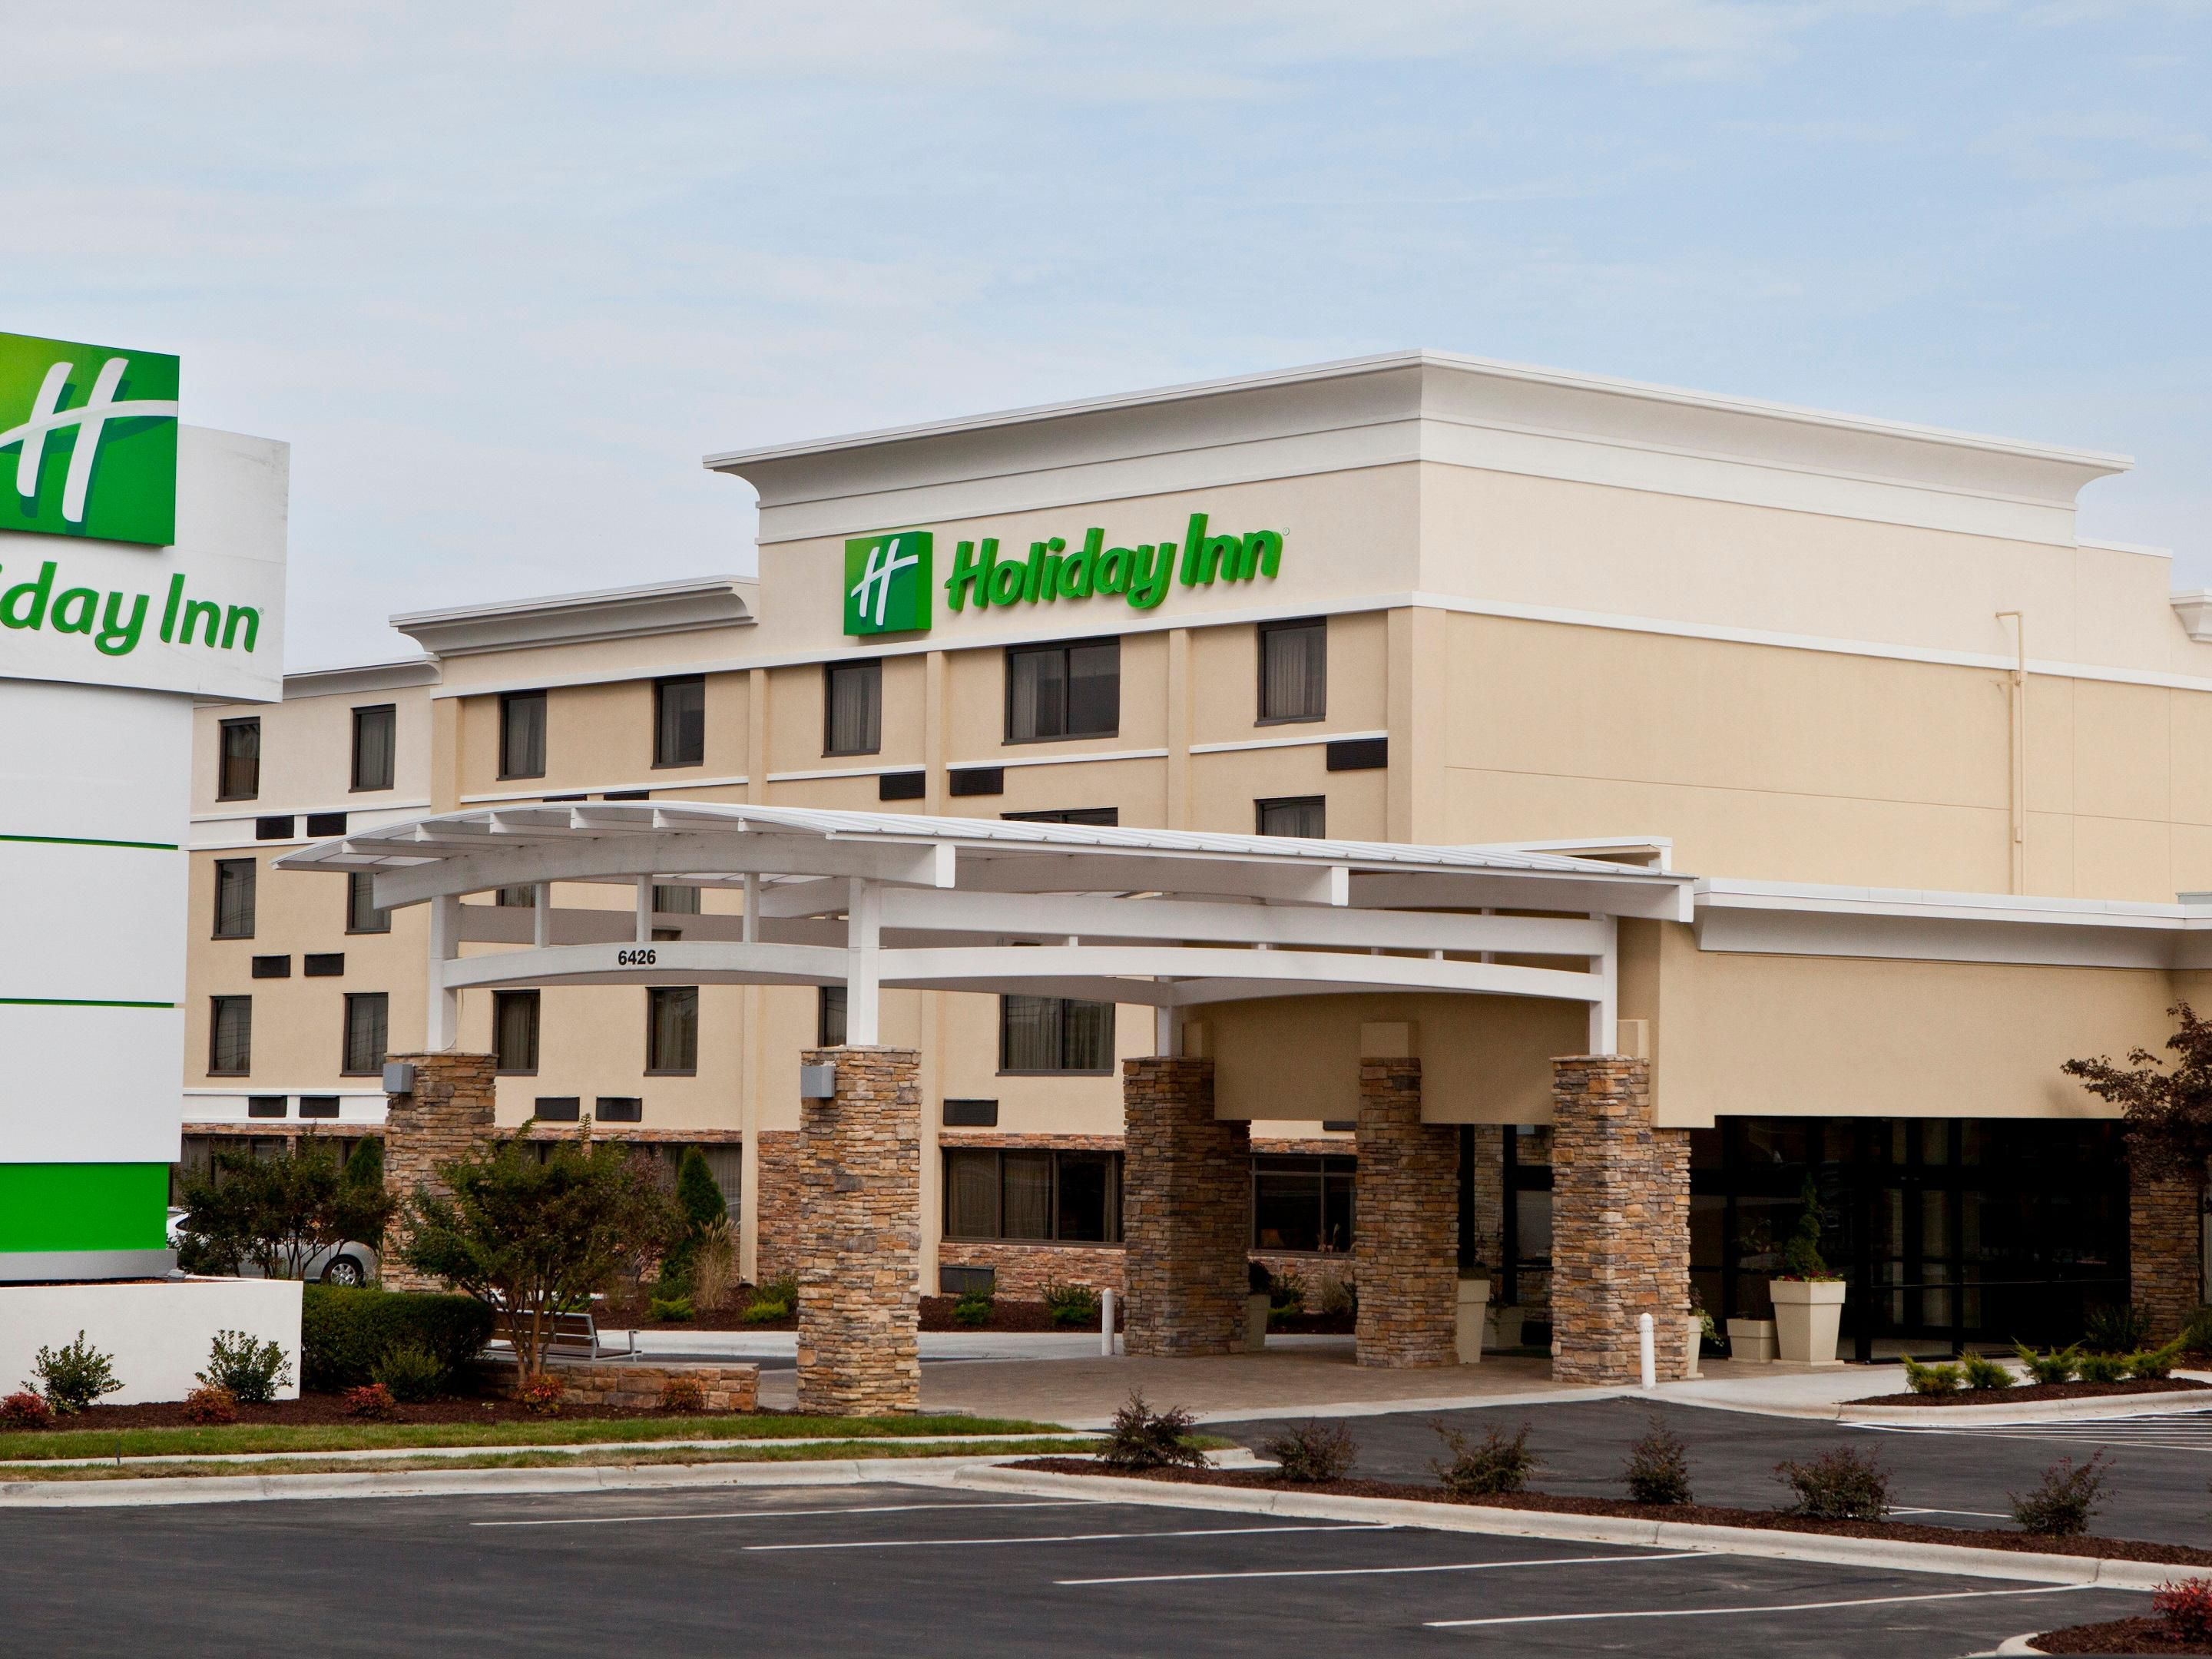 Holiday Inn Greensbooro Airport Hotel Exterior